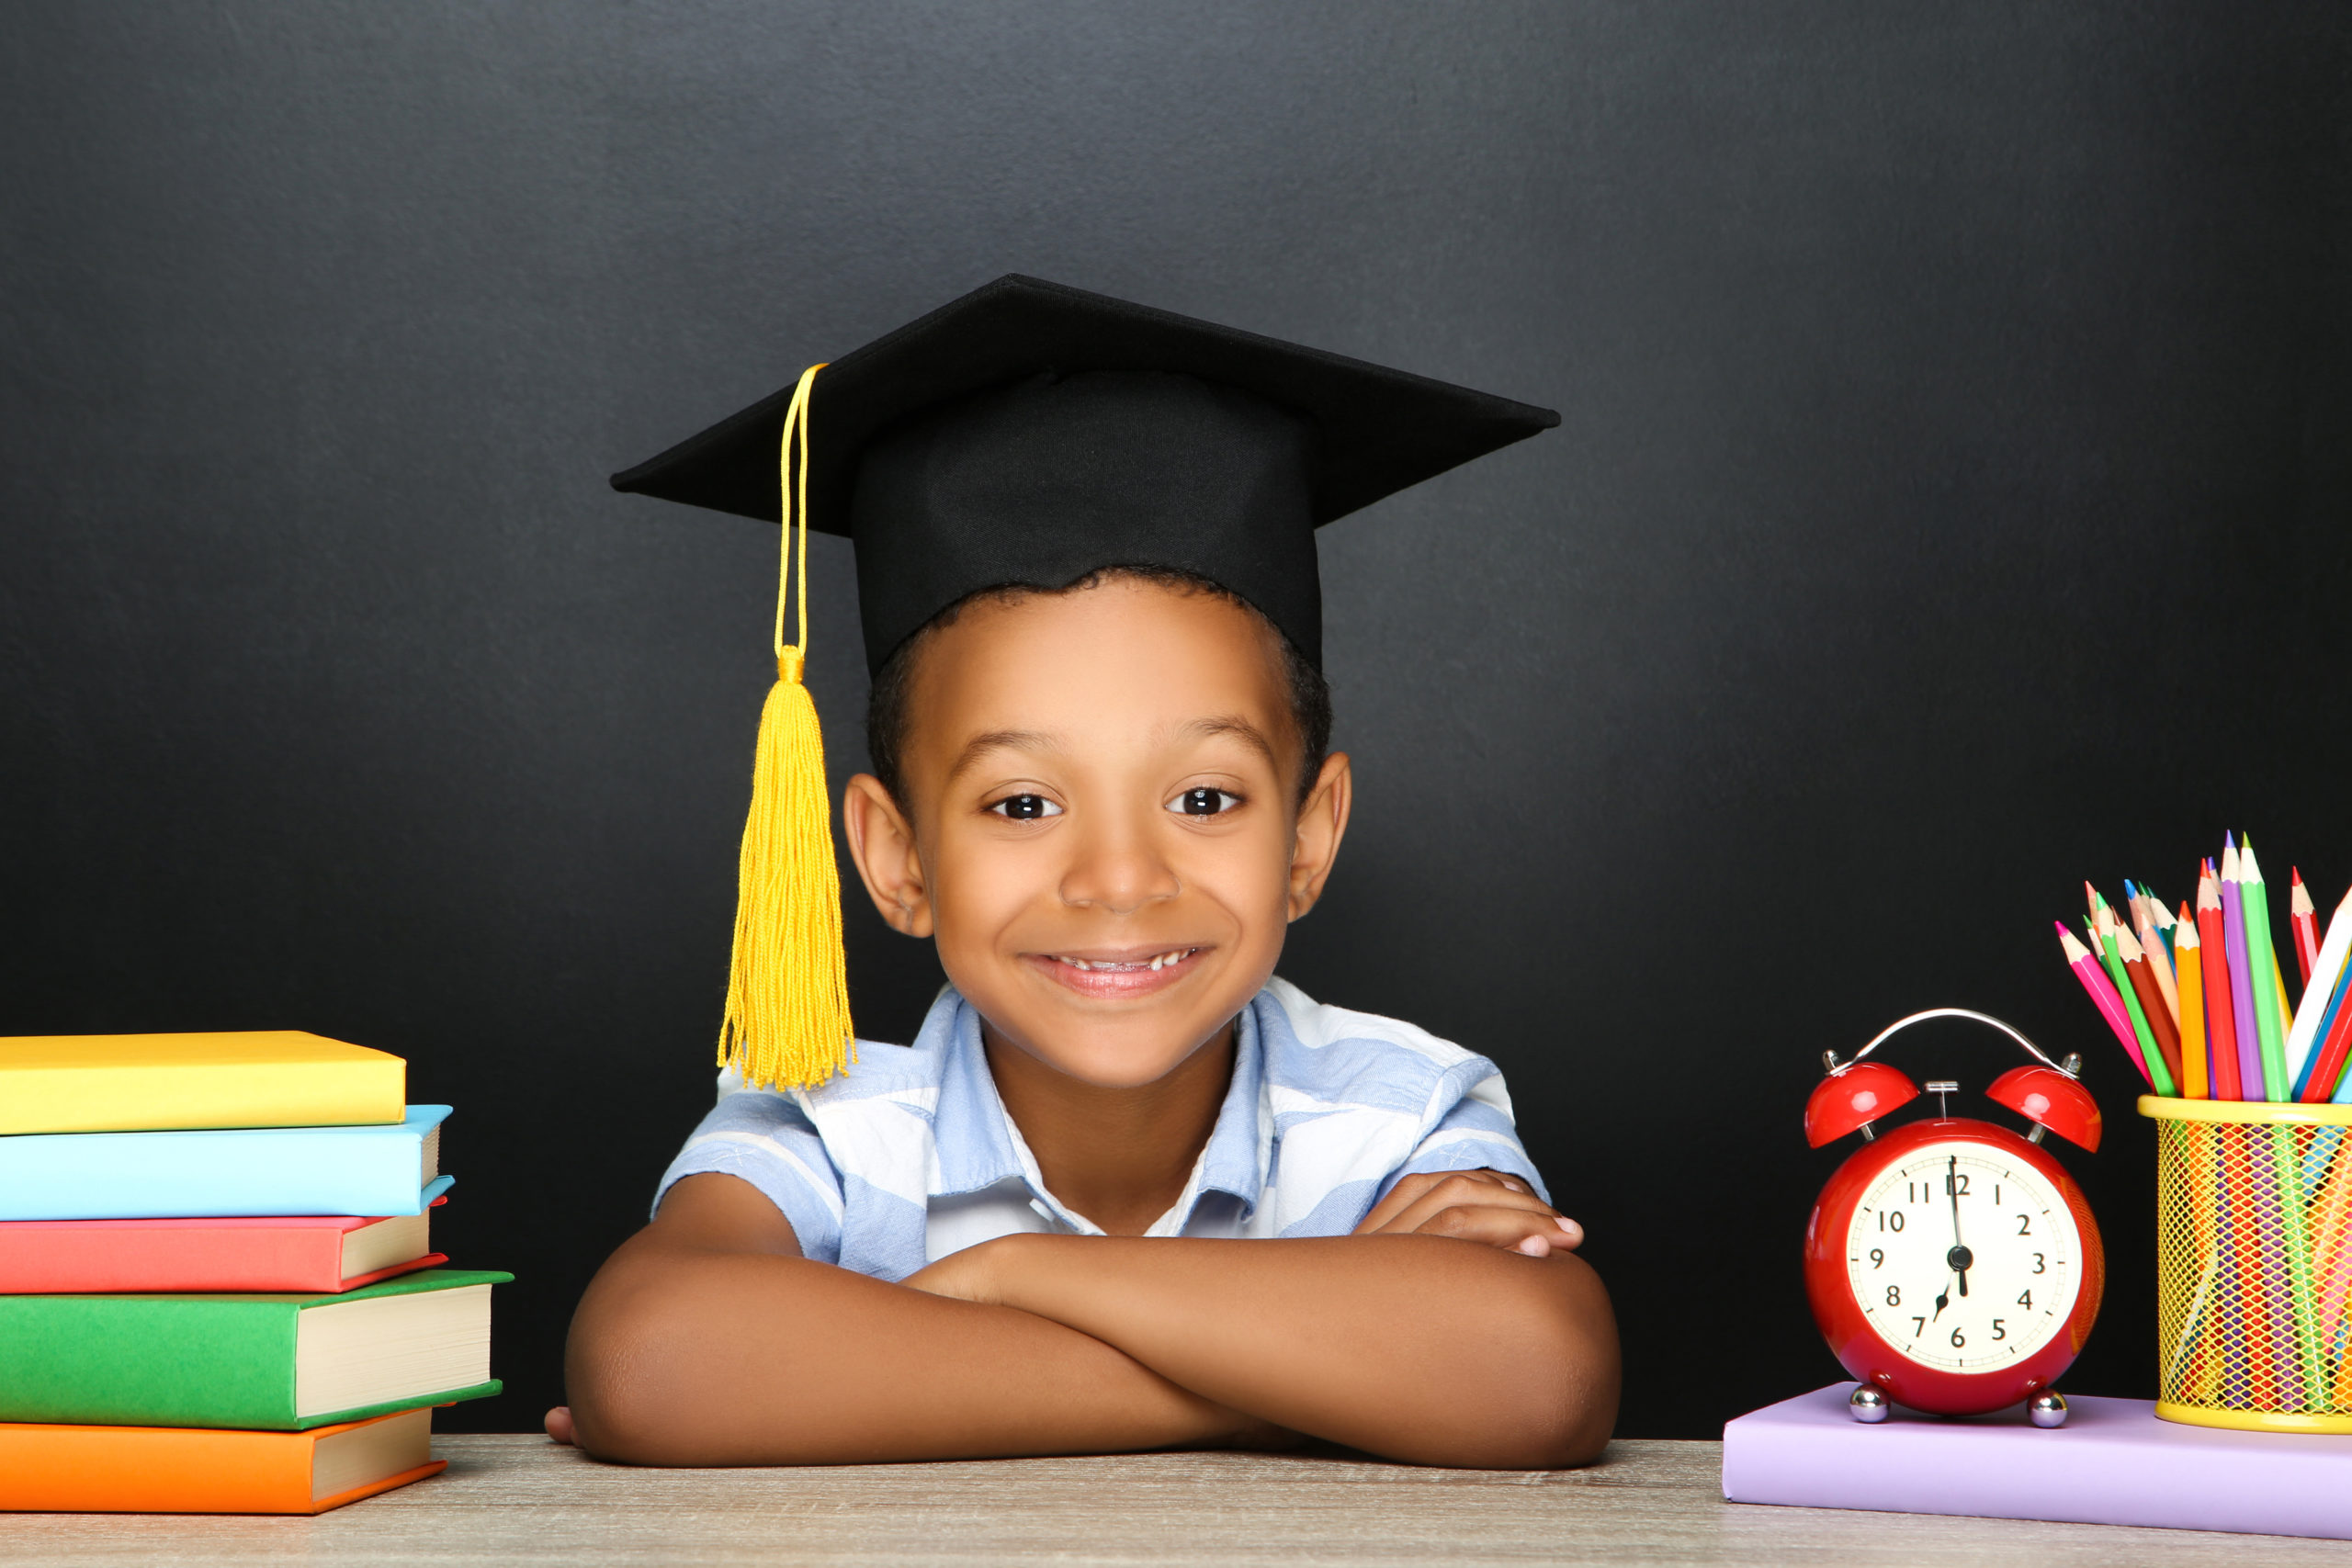 Young African American school boy sitting at desk with books, pencils and alarm clock on black background